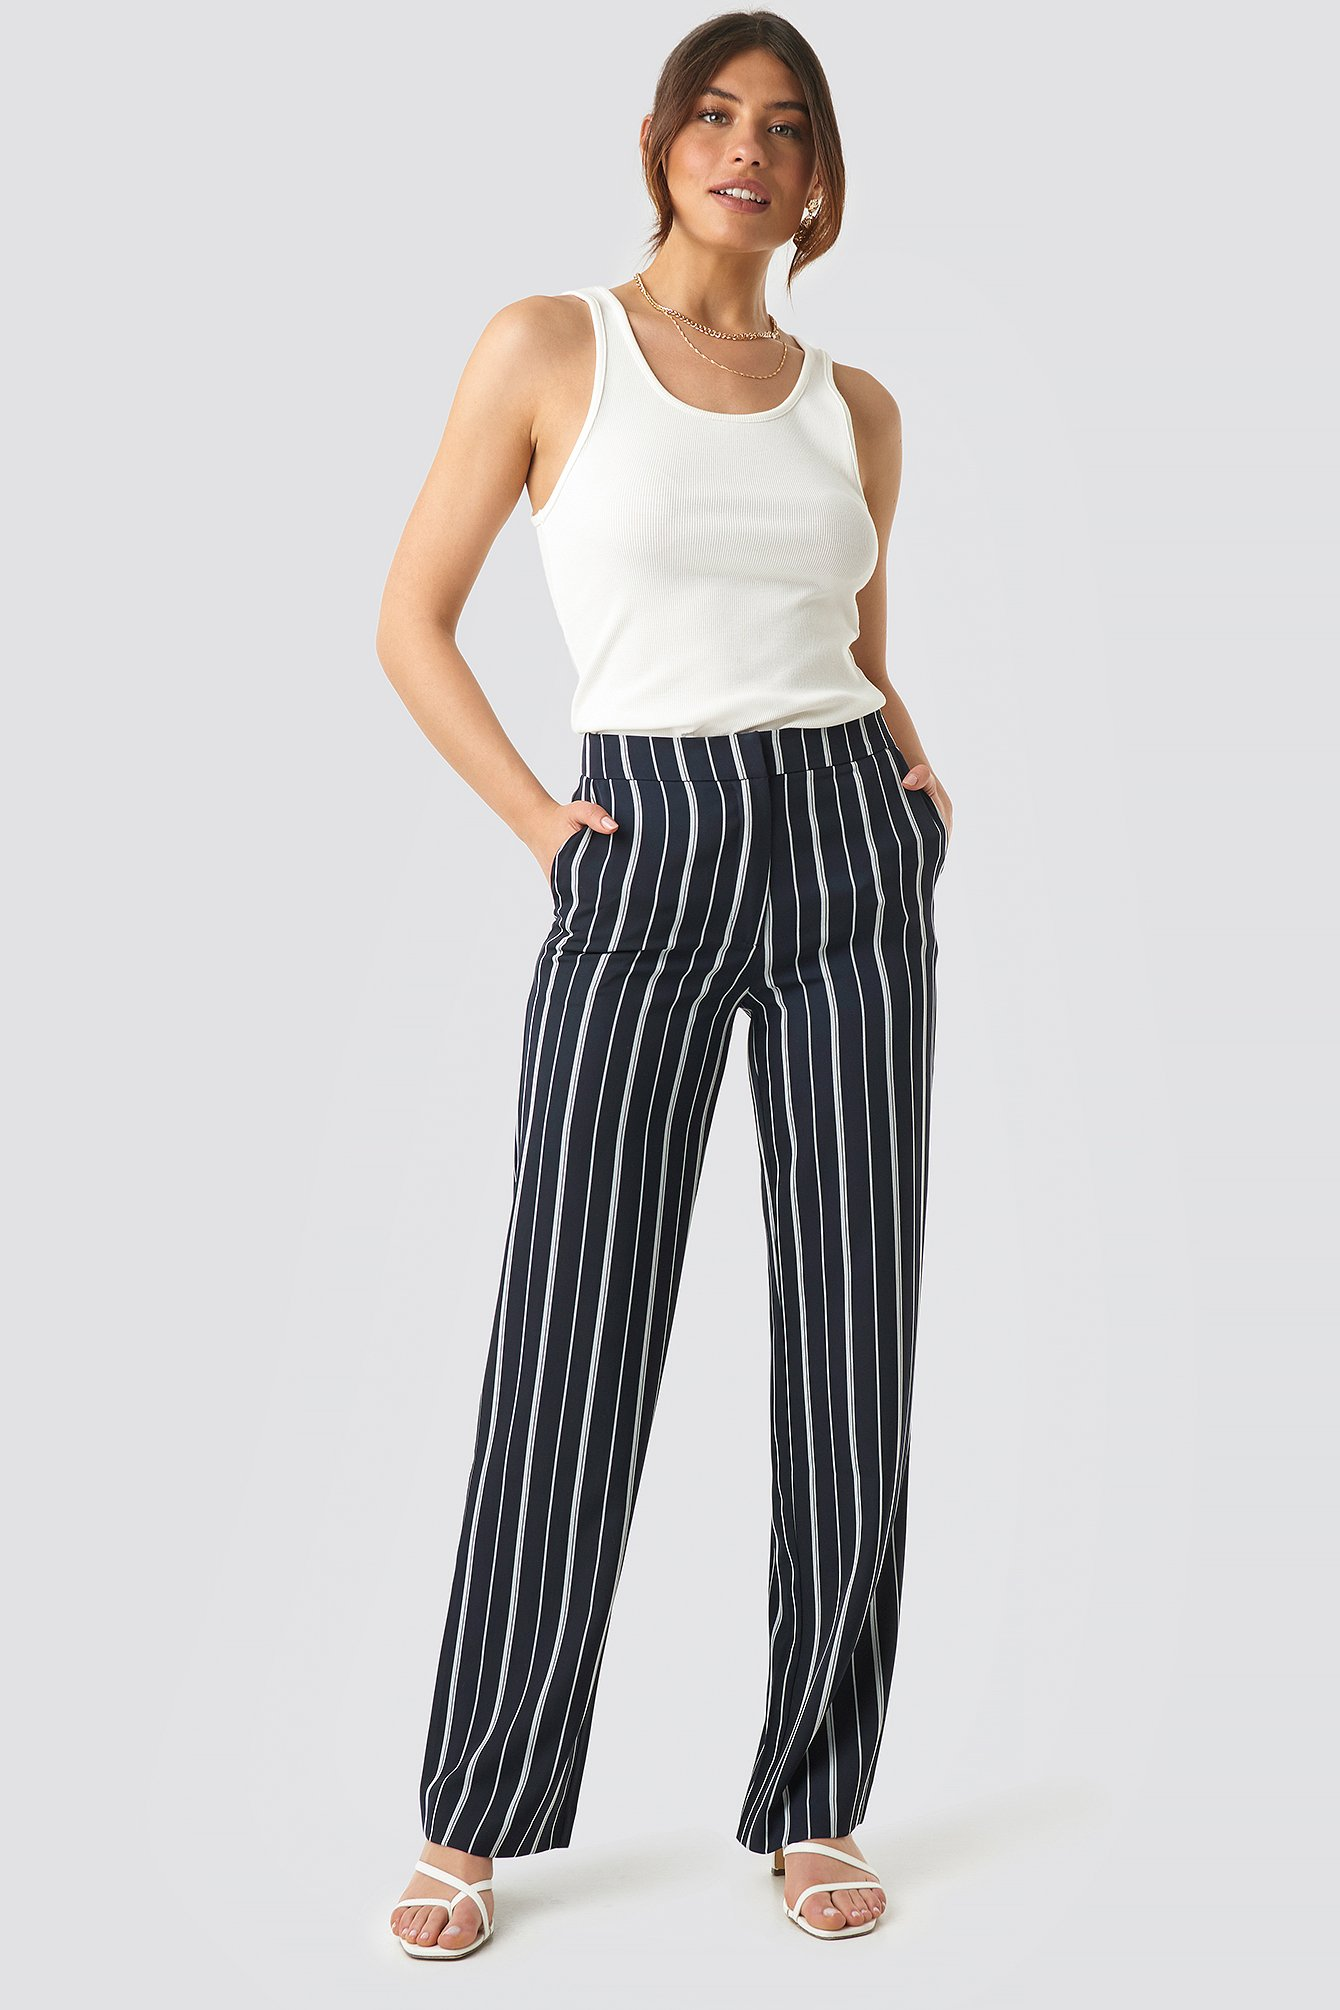 NA-KD Classic Wide Striped Suit Pants - Navy